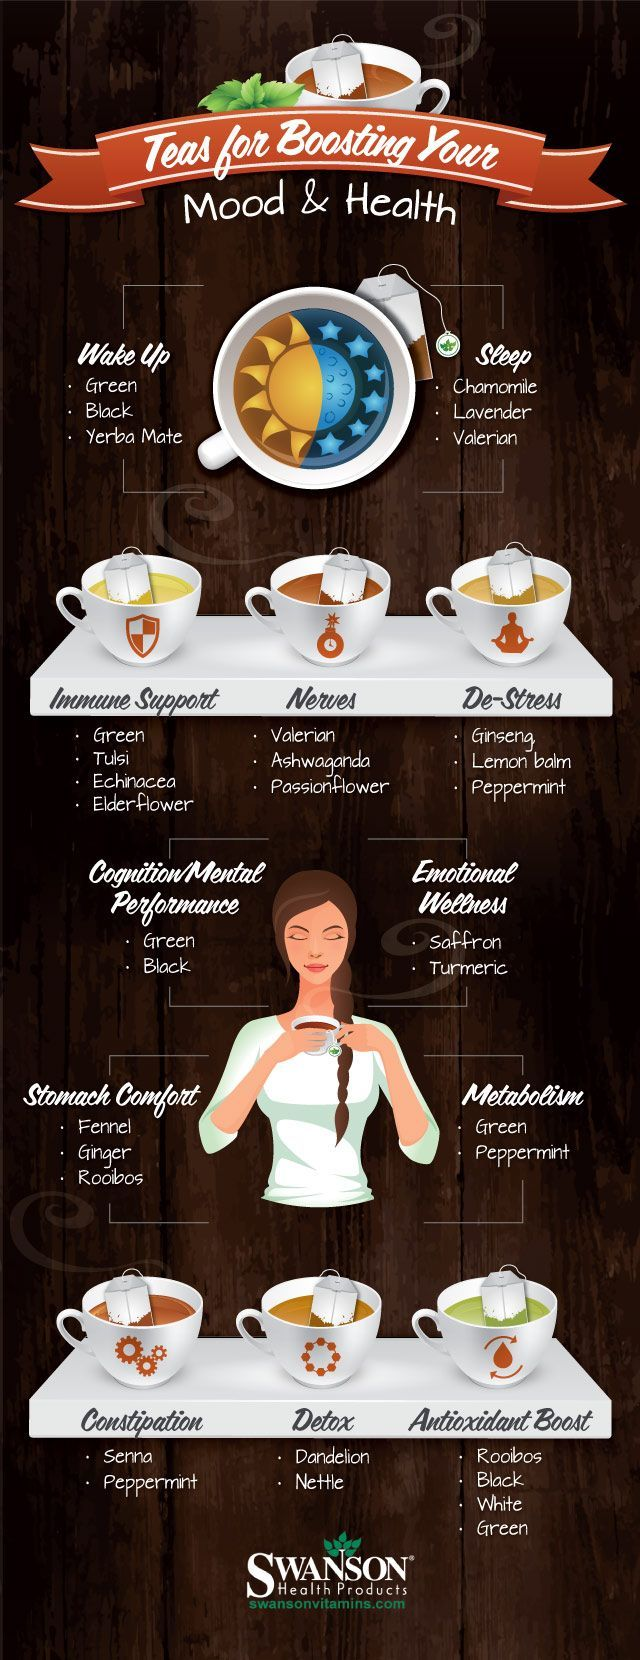 [NEED A HEALTHY BODY SLIMMING CLEANSE? - Get 28 day Full body slimming Detox Tea Program - http://WWW.DETOXMETEA.COM ]  Tips to Enhance Your Mood & Health with Tea infographic